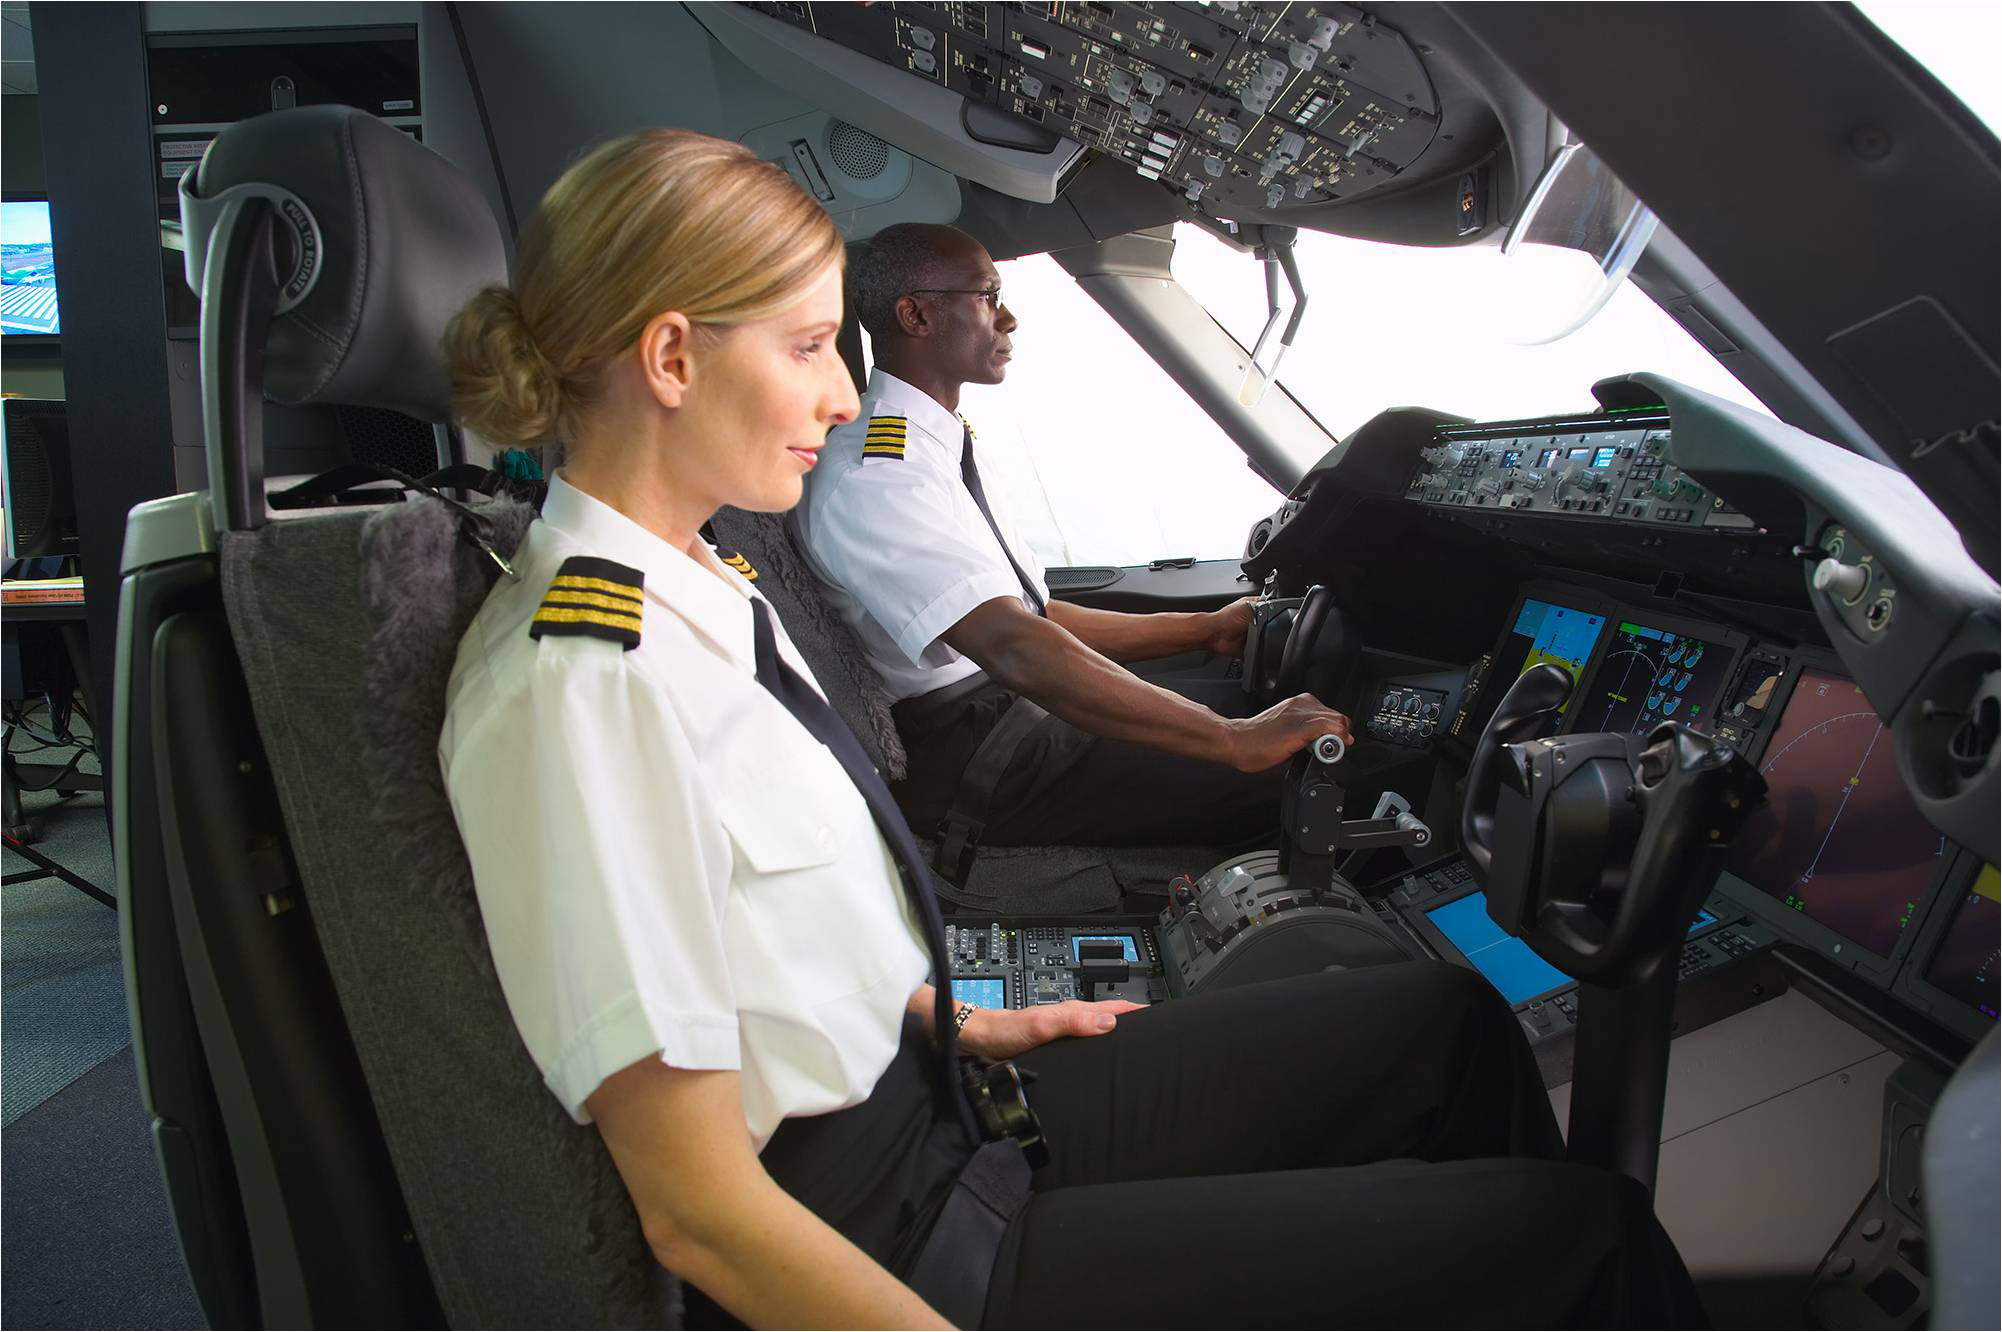 boeing highlights the need for more women pilots in latest pilot